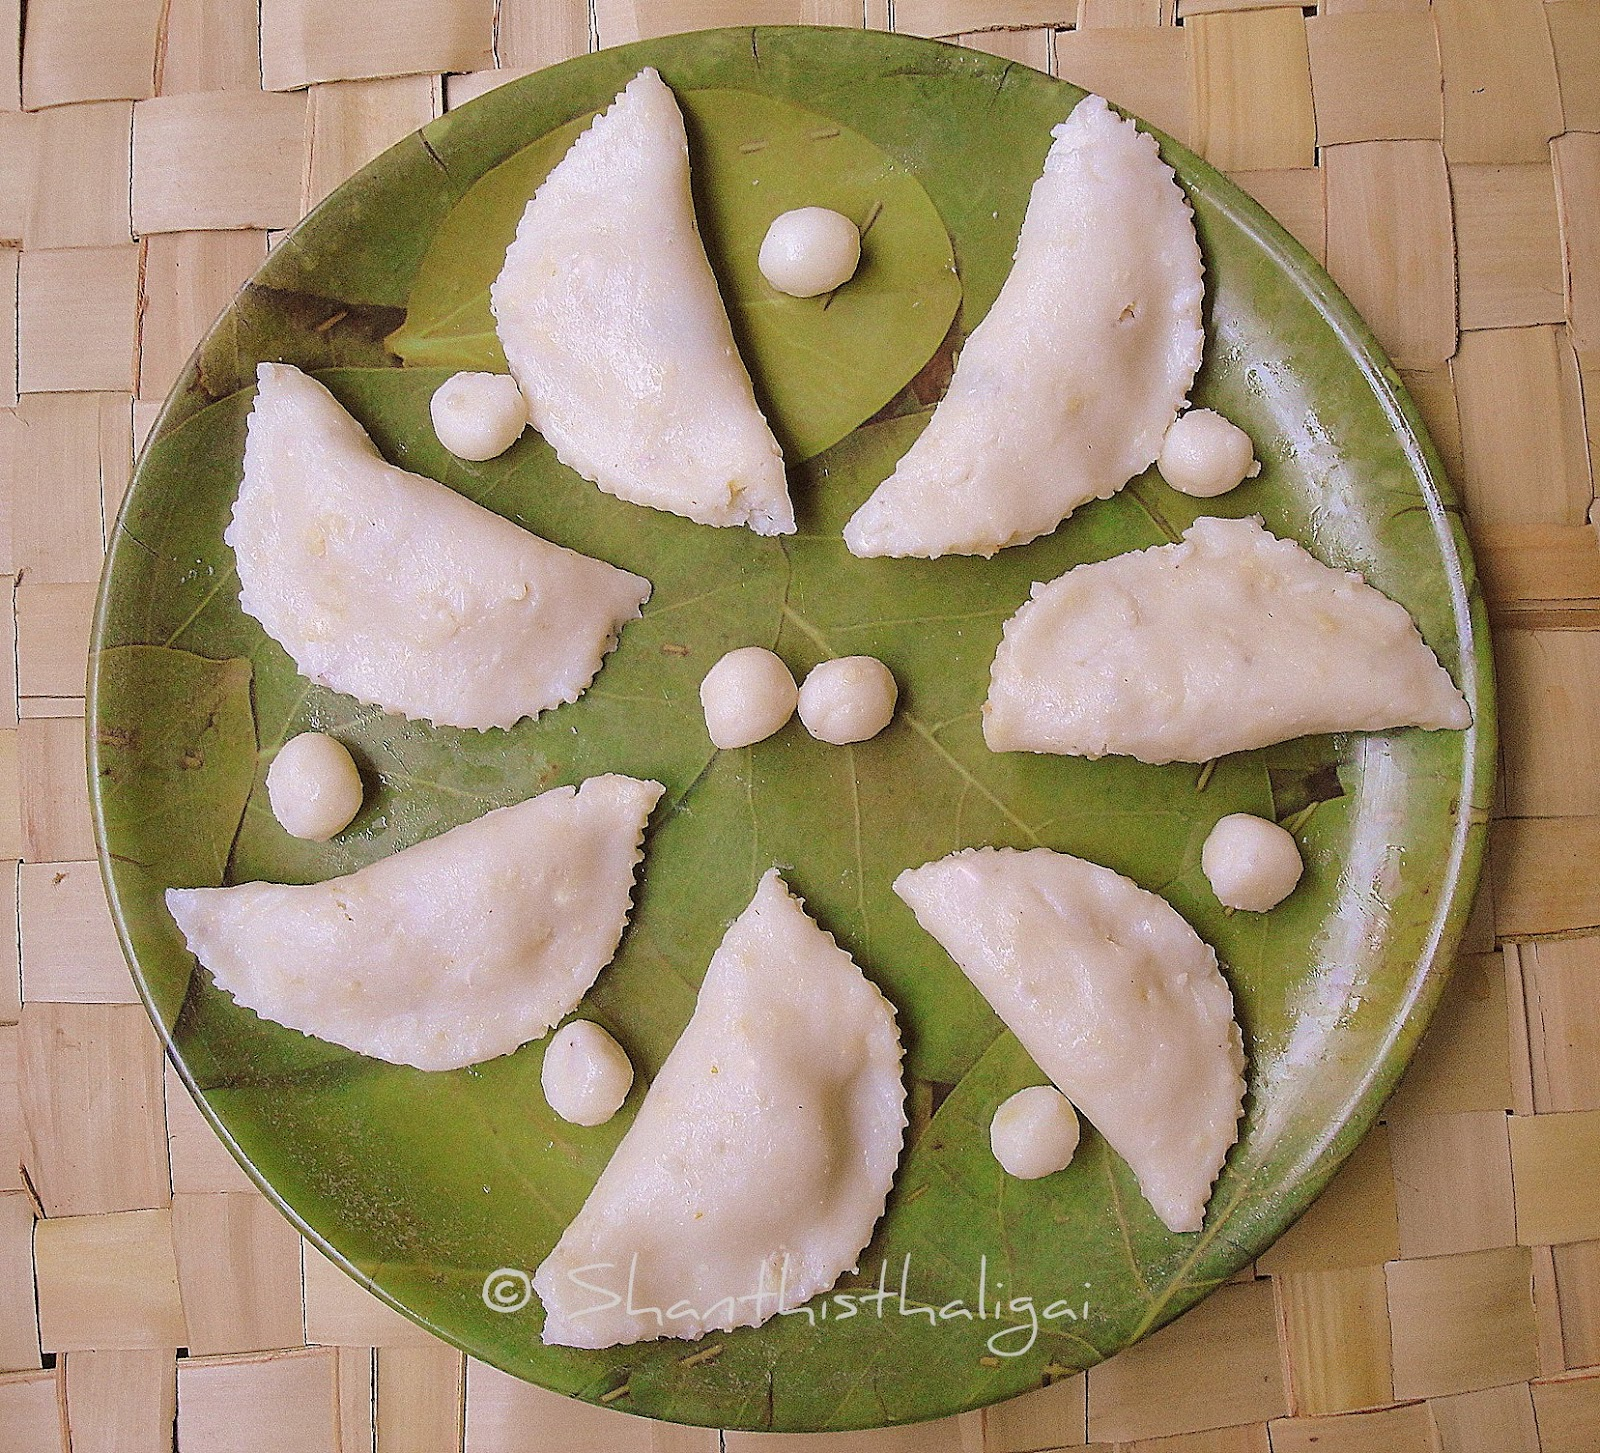 VINAYAKA CHATURTHI RECIPES,How to make uppu kiozhukattai, How to make Ulundhu kozhukattai